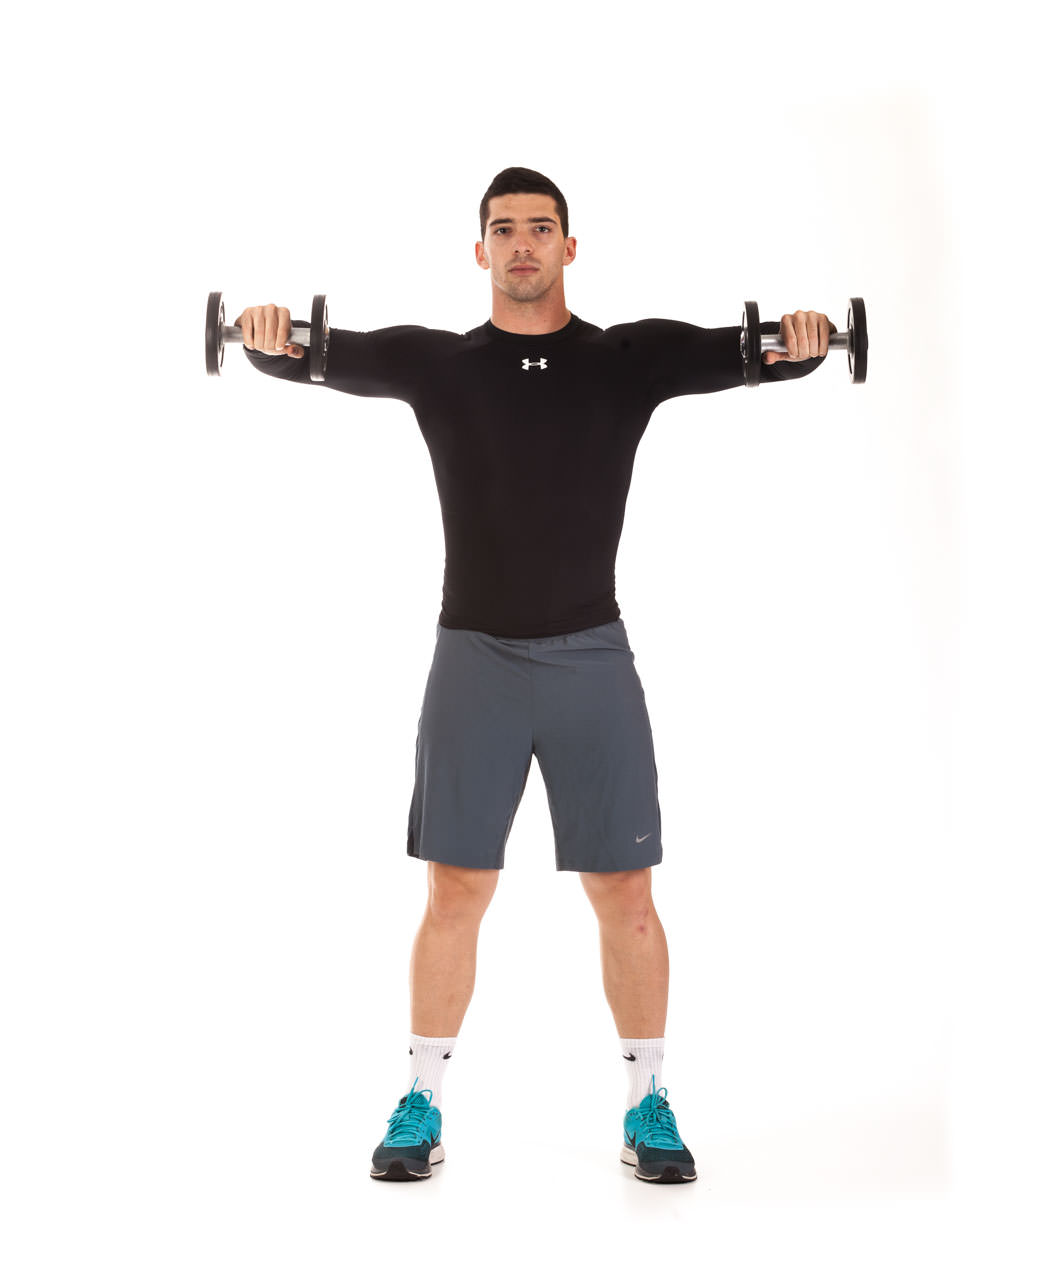 Dumbbell External Rotation frame #2